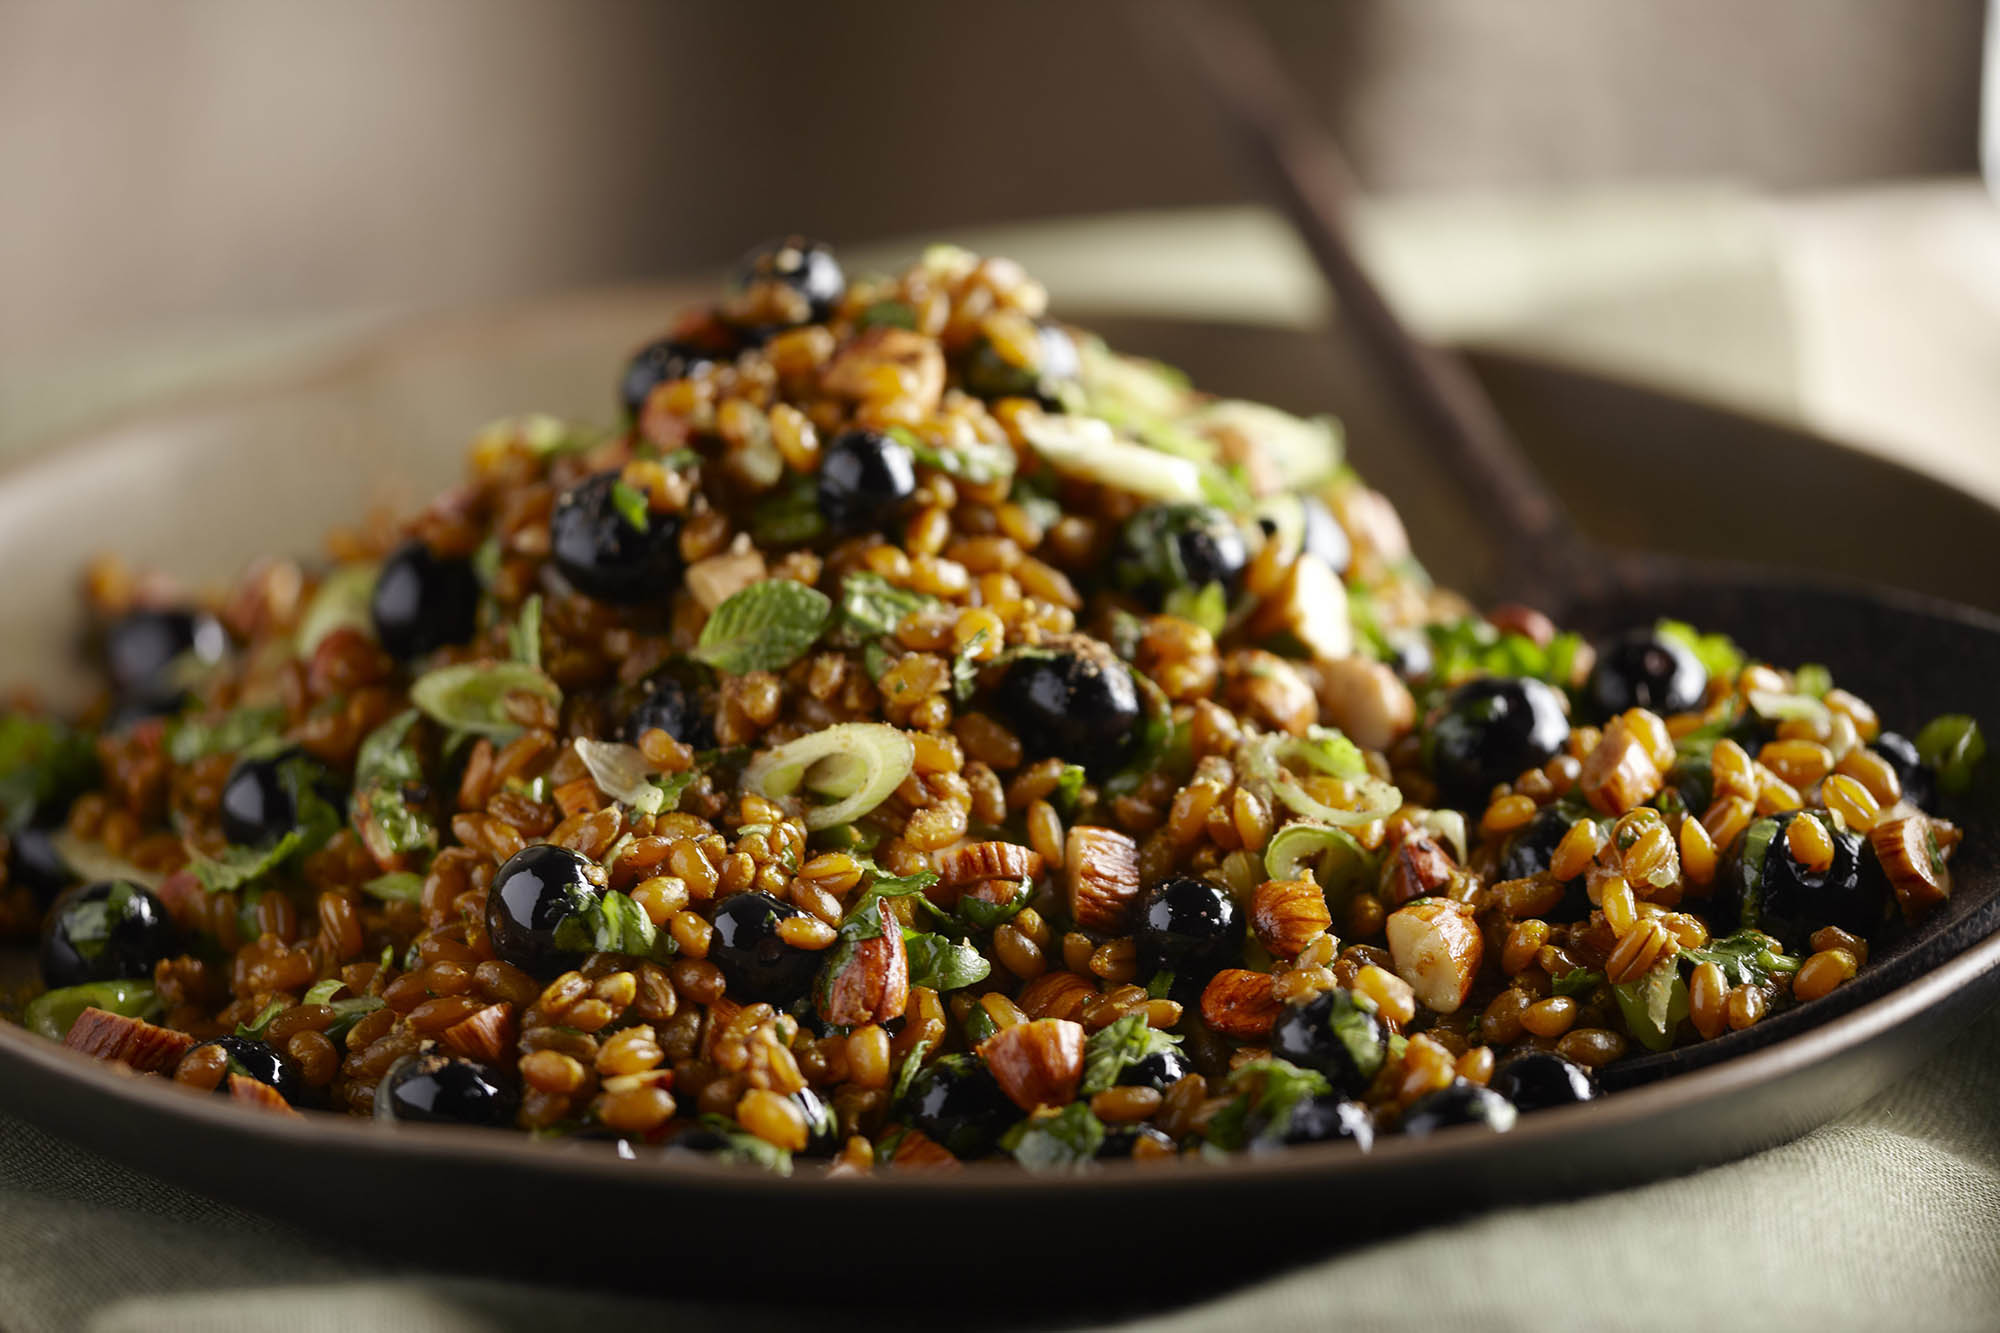 Curried Wheatberries With Blueberries